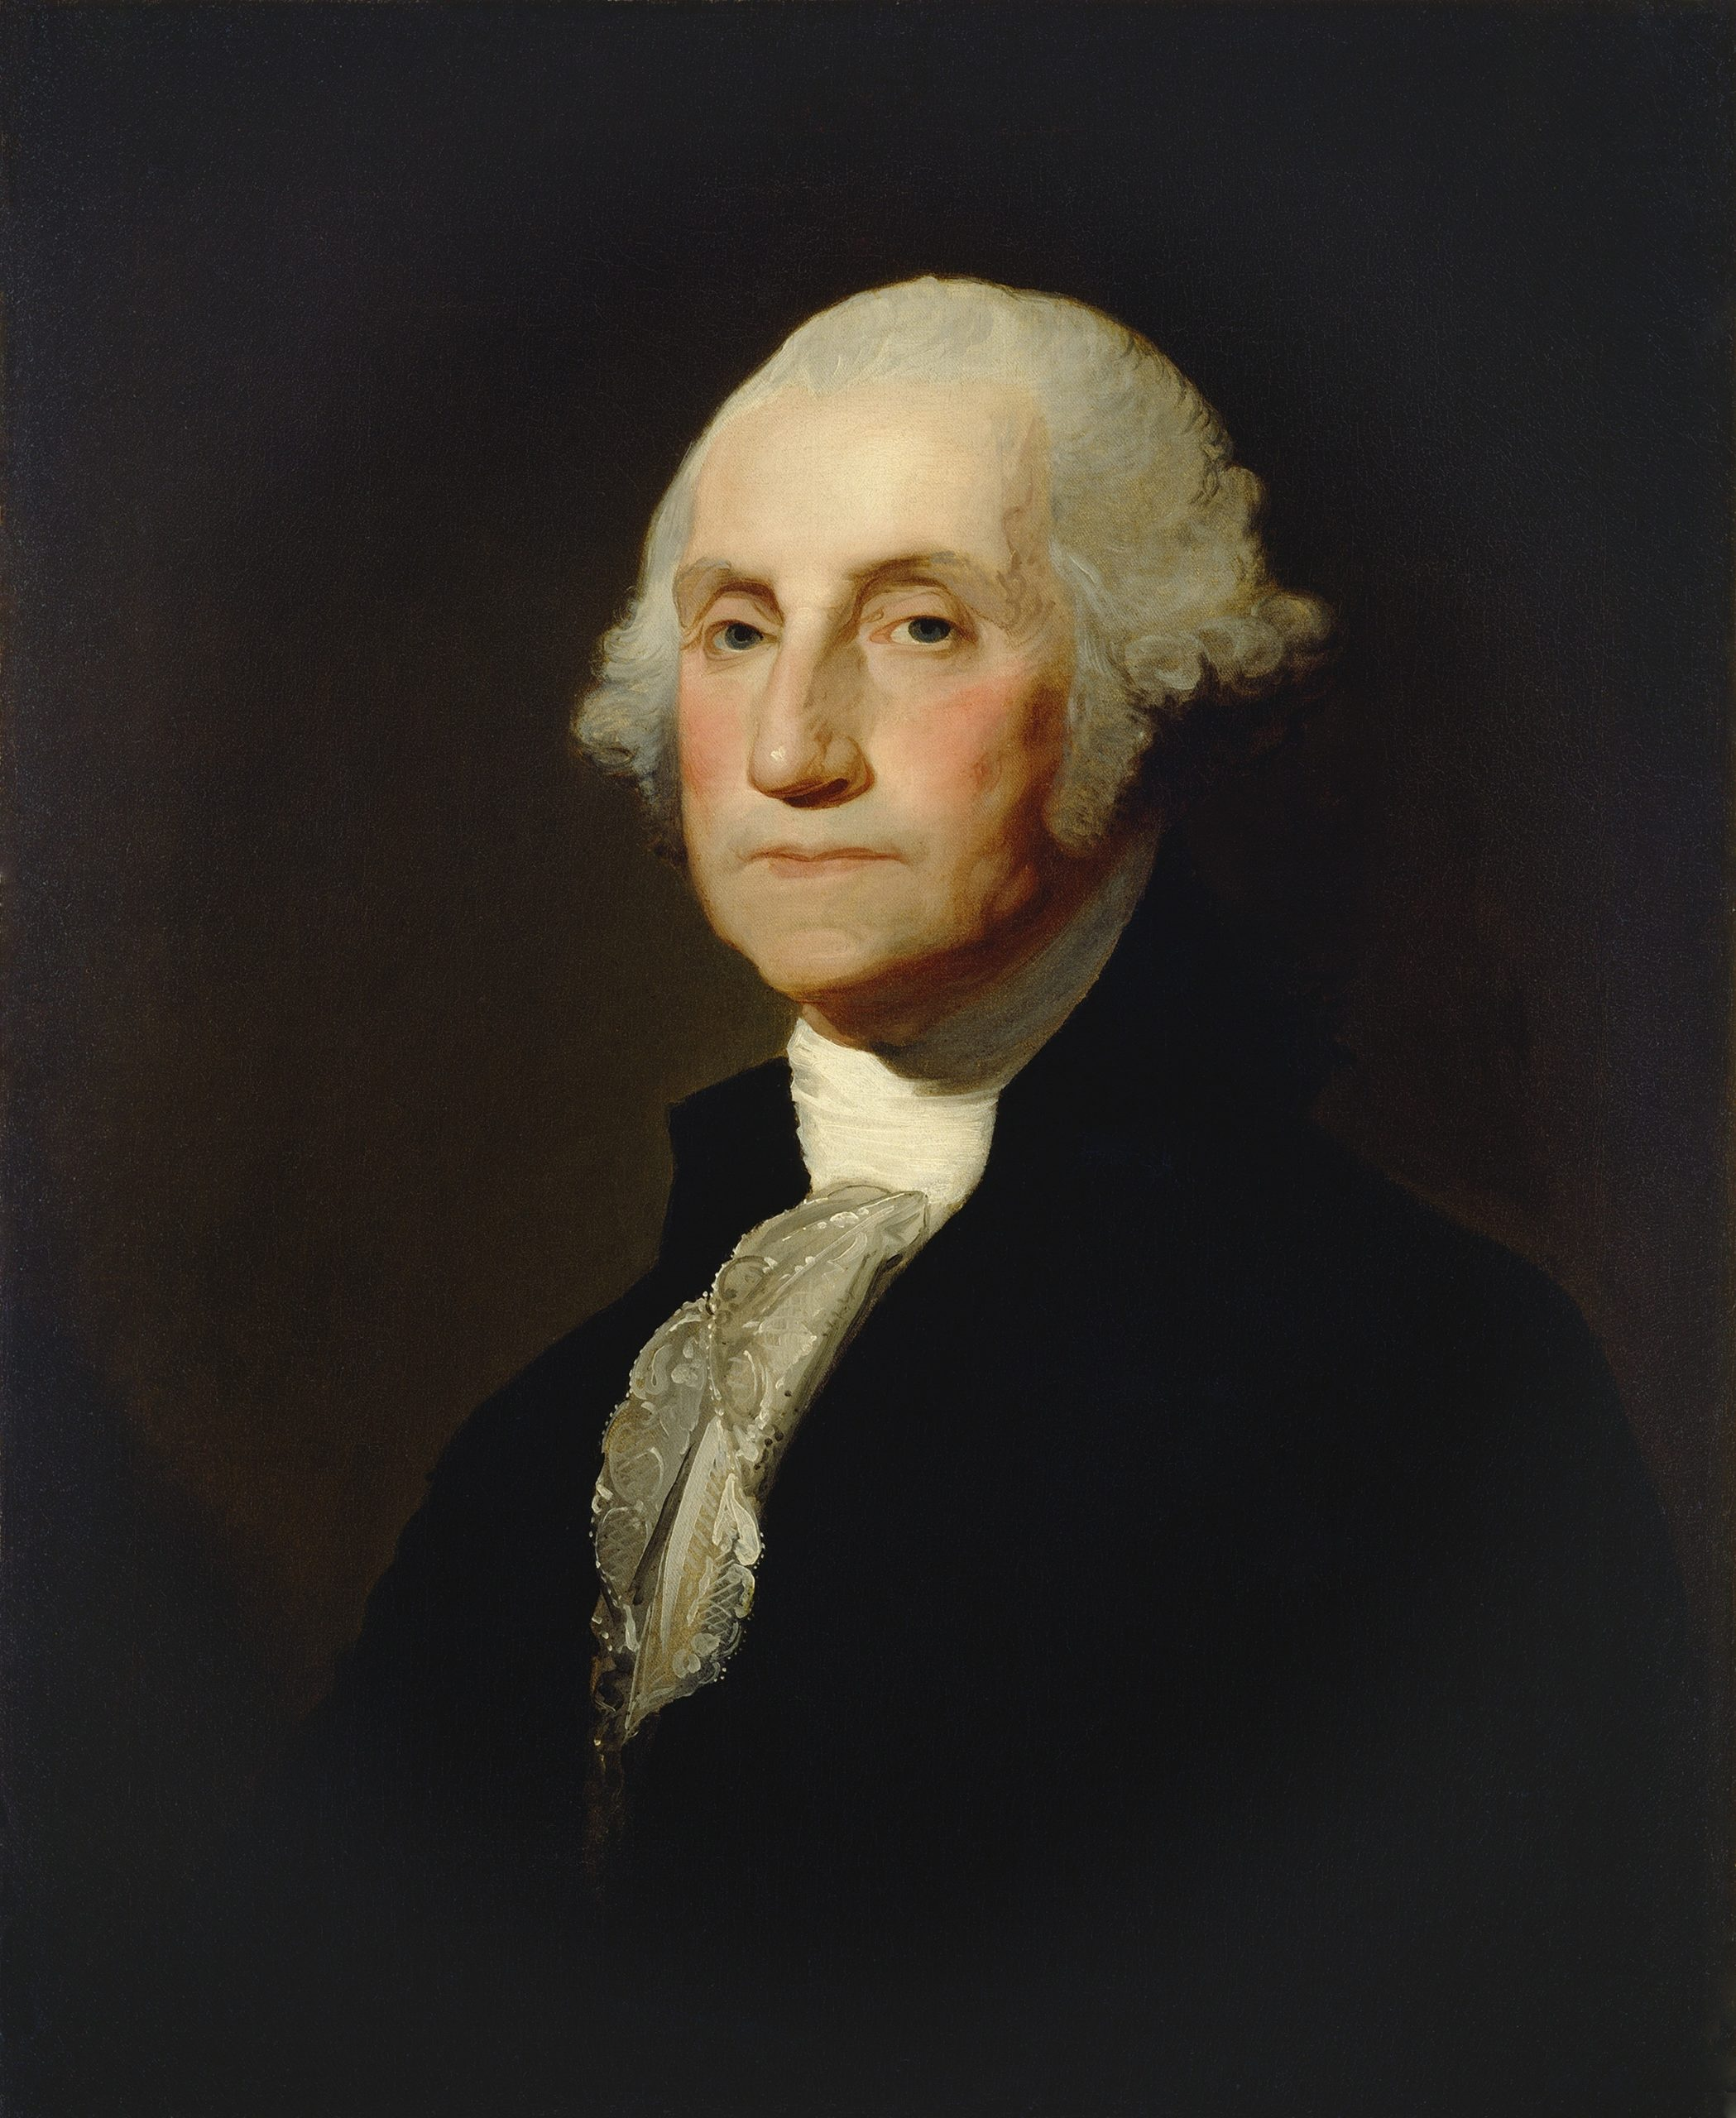 1st President of the United States of America.  He served from 1789-1797.